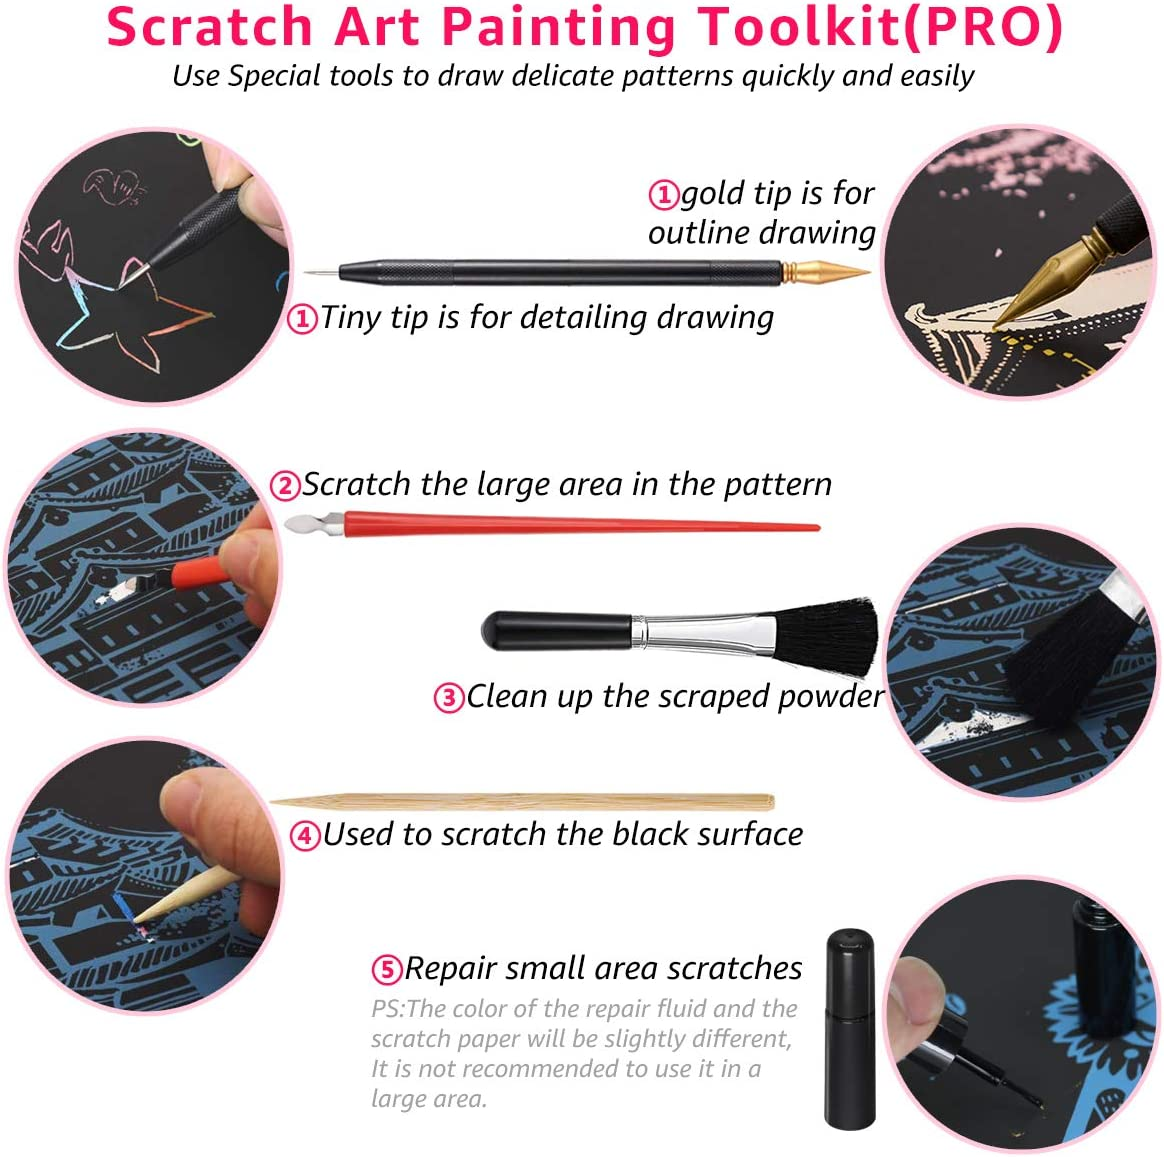 Sketch Night View Scratchboard for Kids /& Adults Scratch Art Rainbow Painting Paper 16x11.2 with 7 Tools Engraving /& Craft Set Creative Gift Sydney Opera House - Victoria Harbour - Singapore